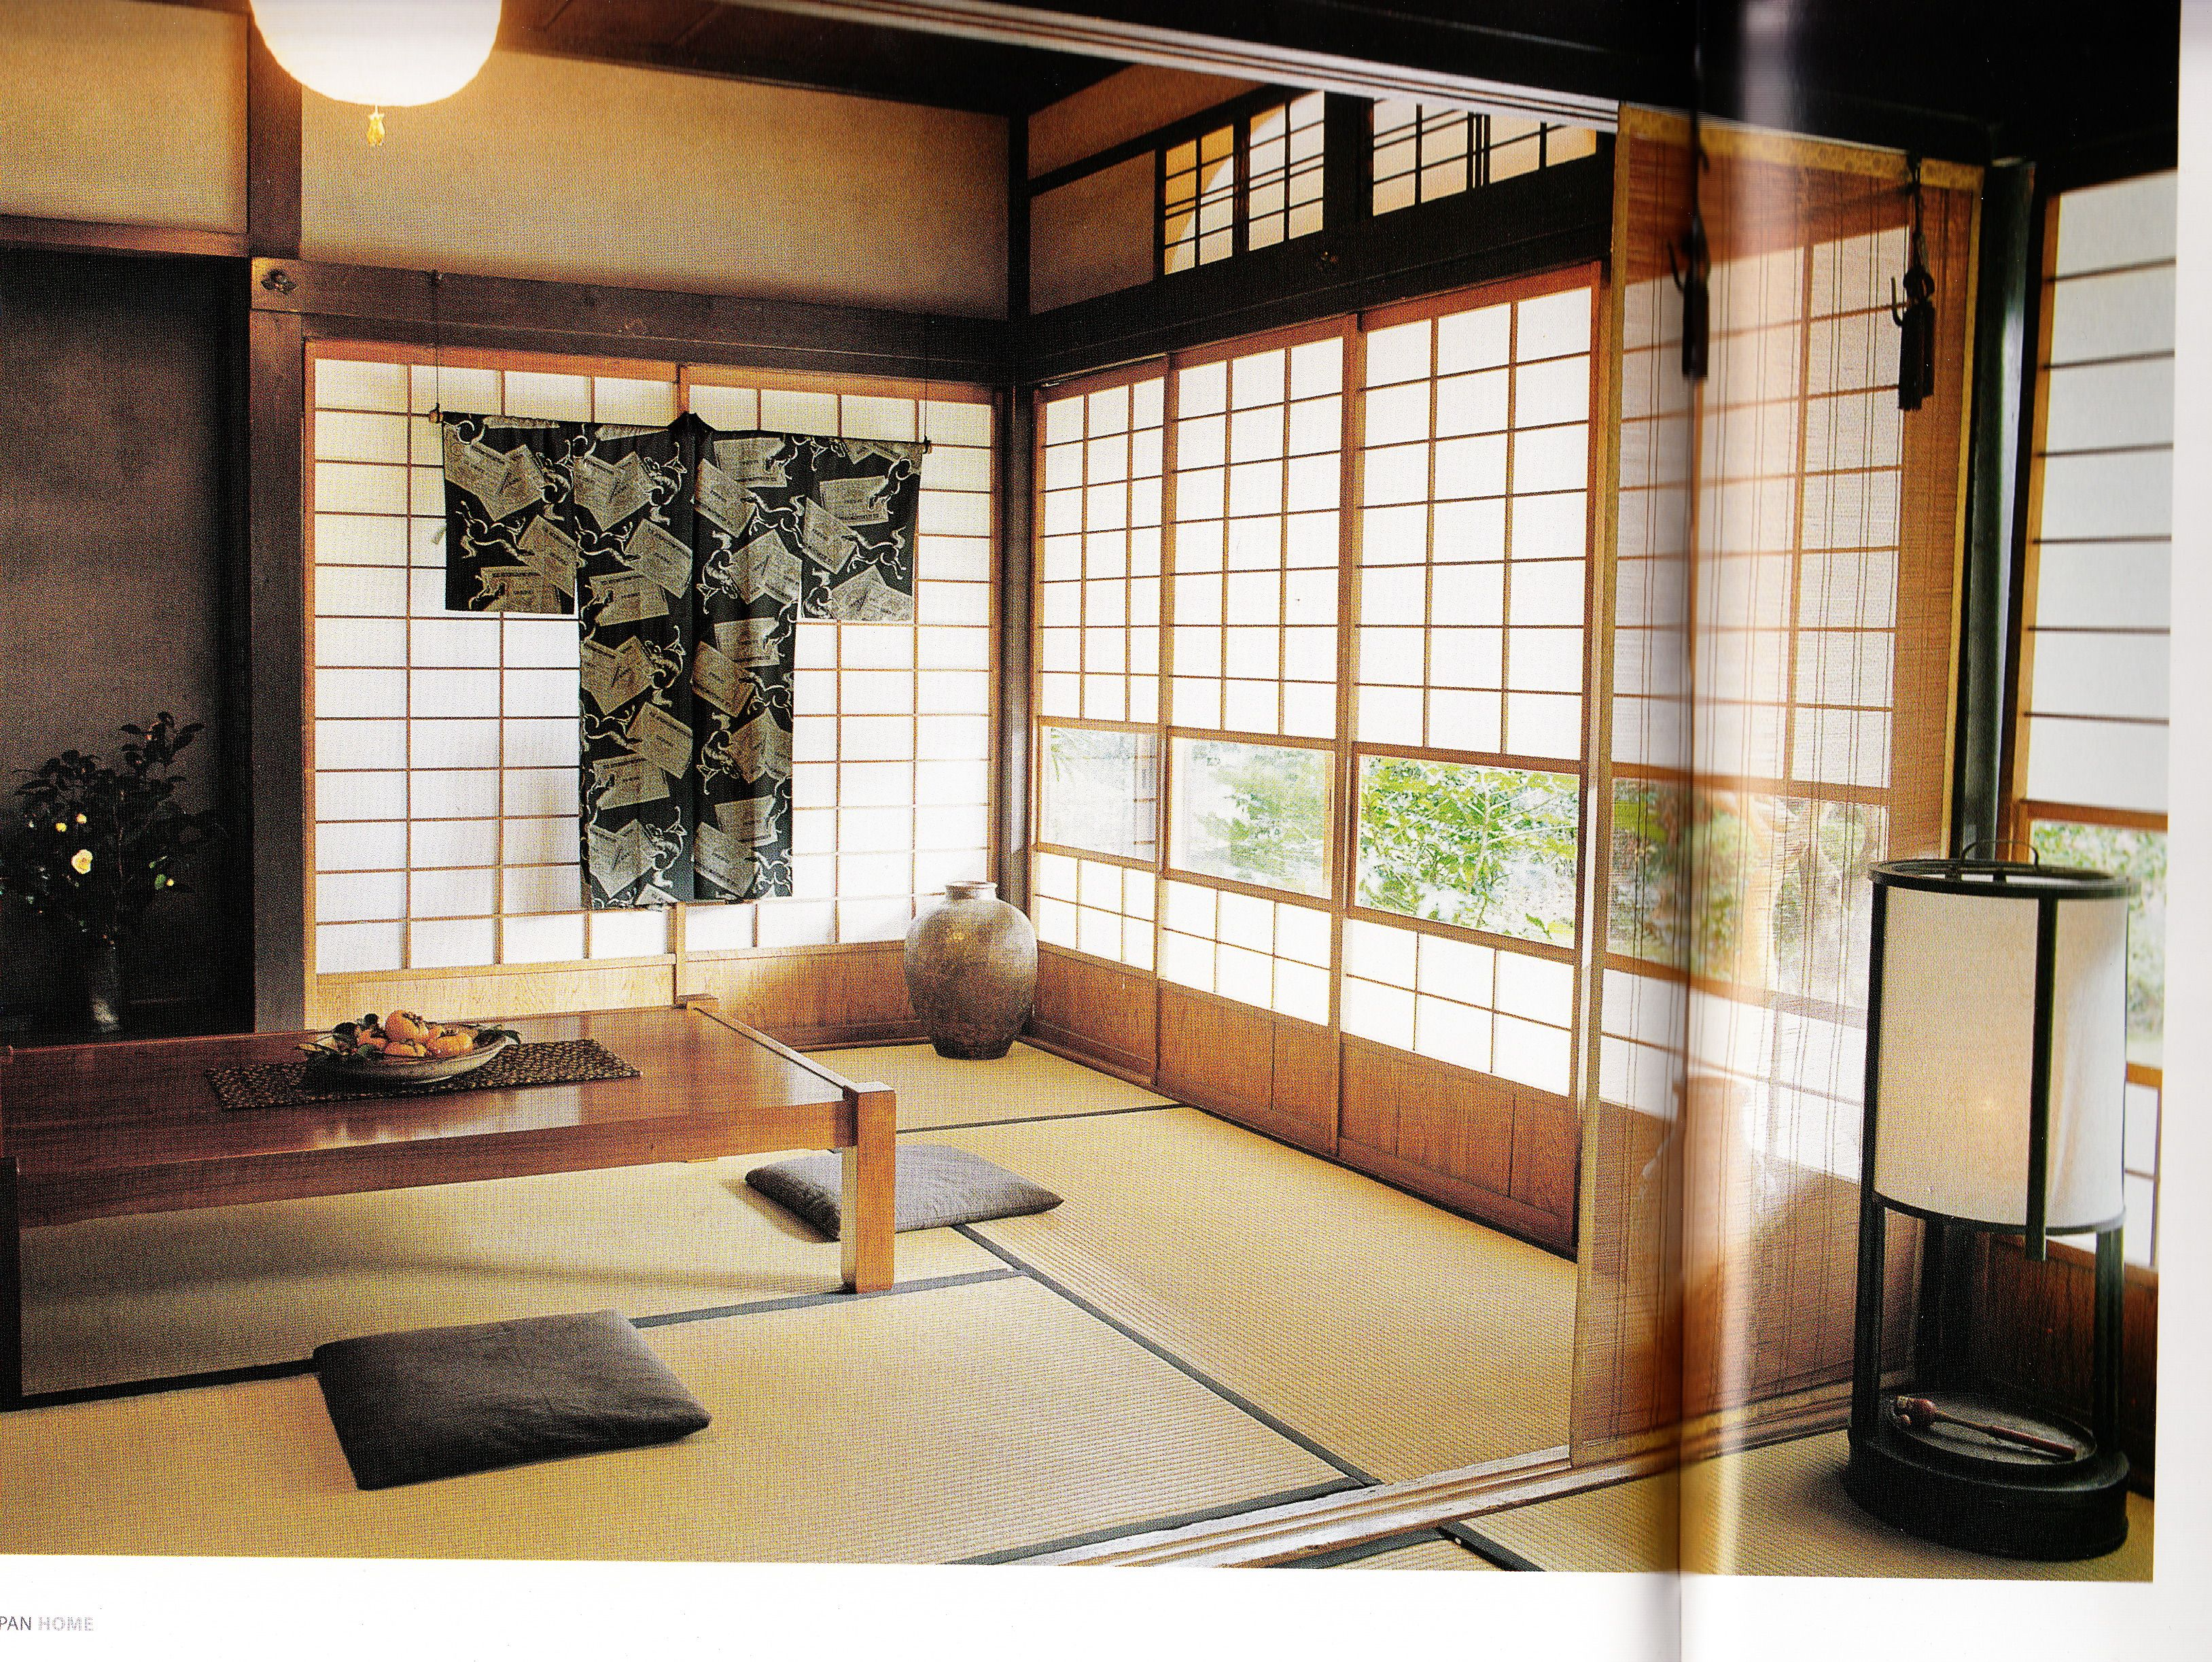 Interior Decor Japan Home Love The Bright Open Windows Lets You Feel Close To Nature Japanese Home Decor Japan Home Japanese House Living room japan style